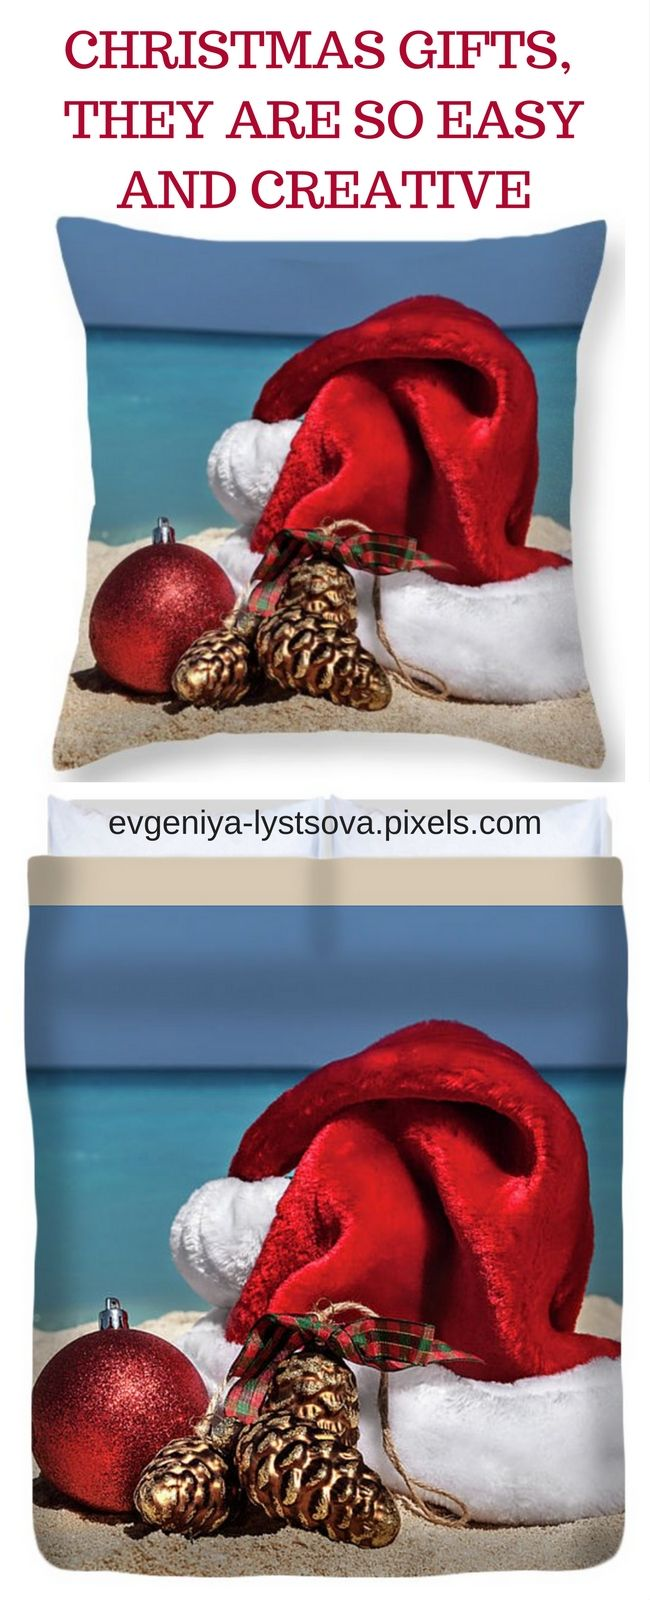 Duvet Cover and Throw Pillow featuring the photograph Christmas Hat by Evgeniya Lystsova. Let your Gift stand out from everybody else's! SHIPS WITHIN 3-4 business days. #EvgeniyaLystsovaFineArtPhotography #Christmas #Beach #SantaHat #Decorations #Gifts #HomeDecor #GreetingCards